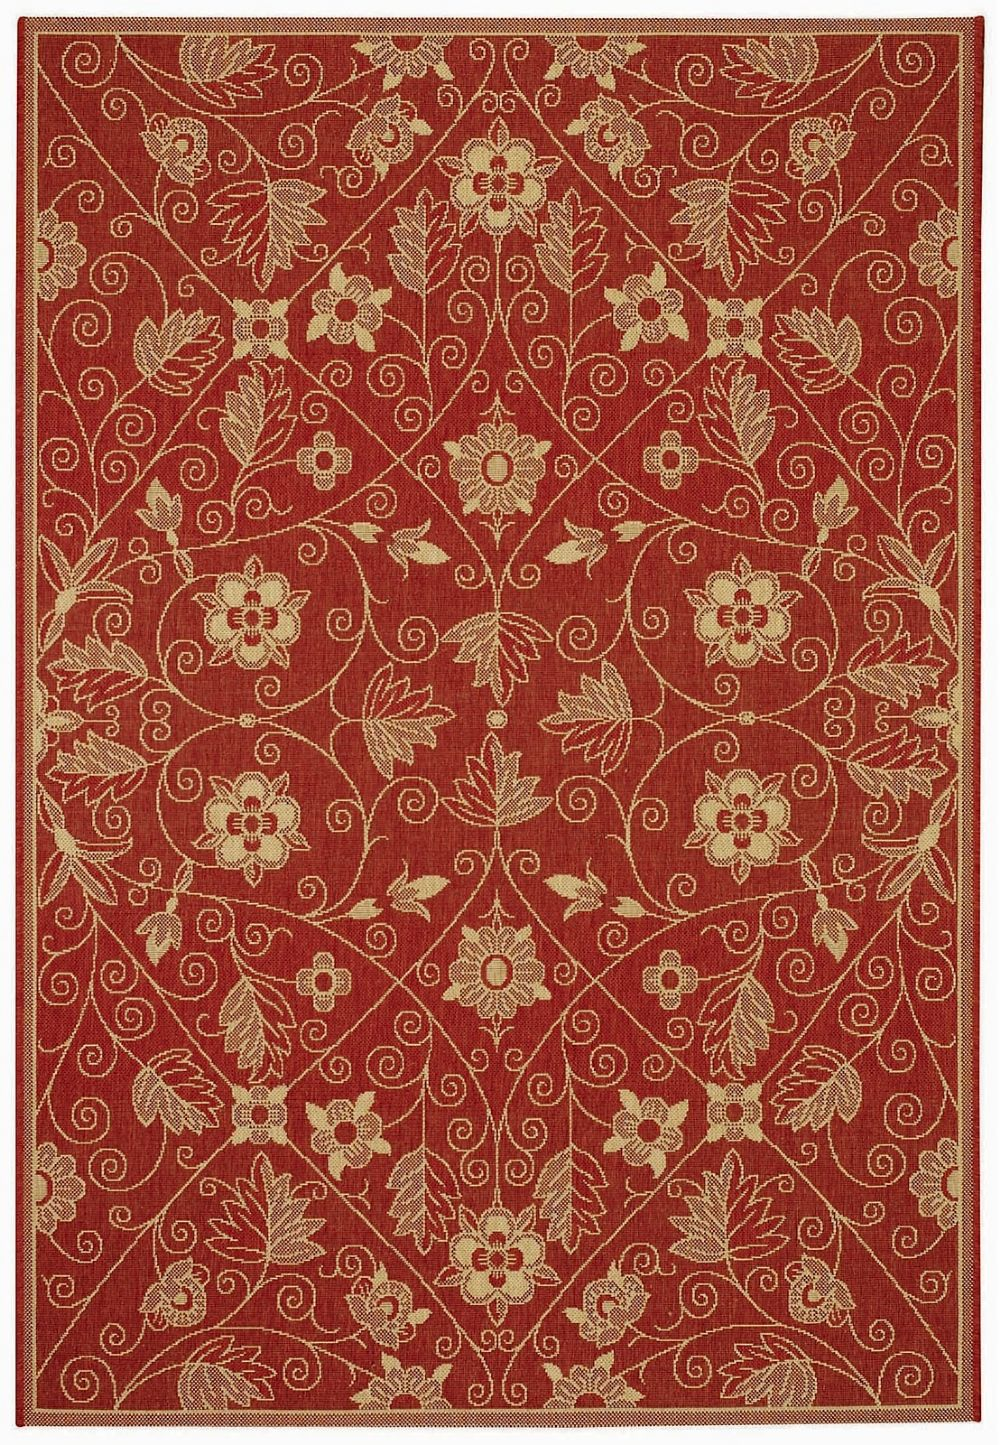 capel elsinore-garden maze contemporary area rug collection